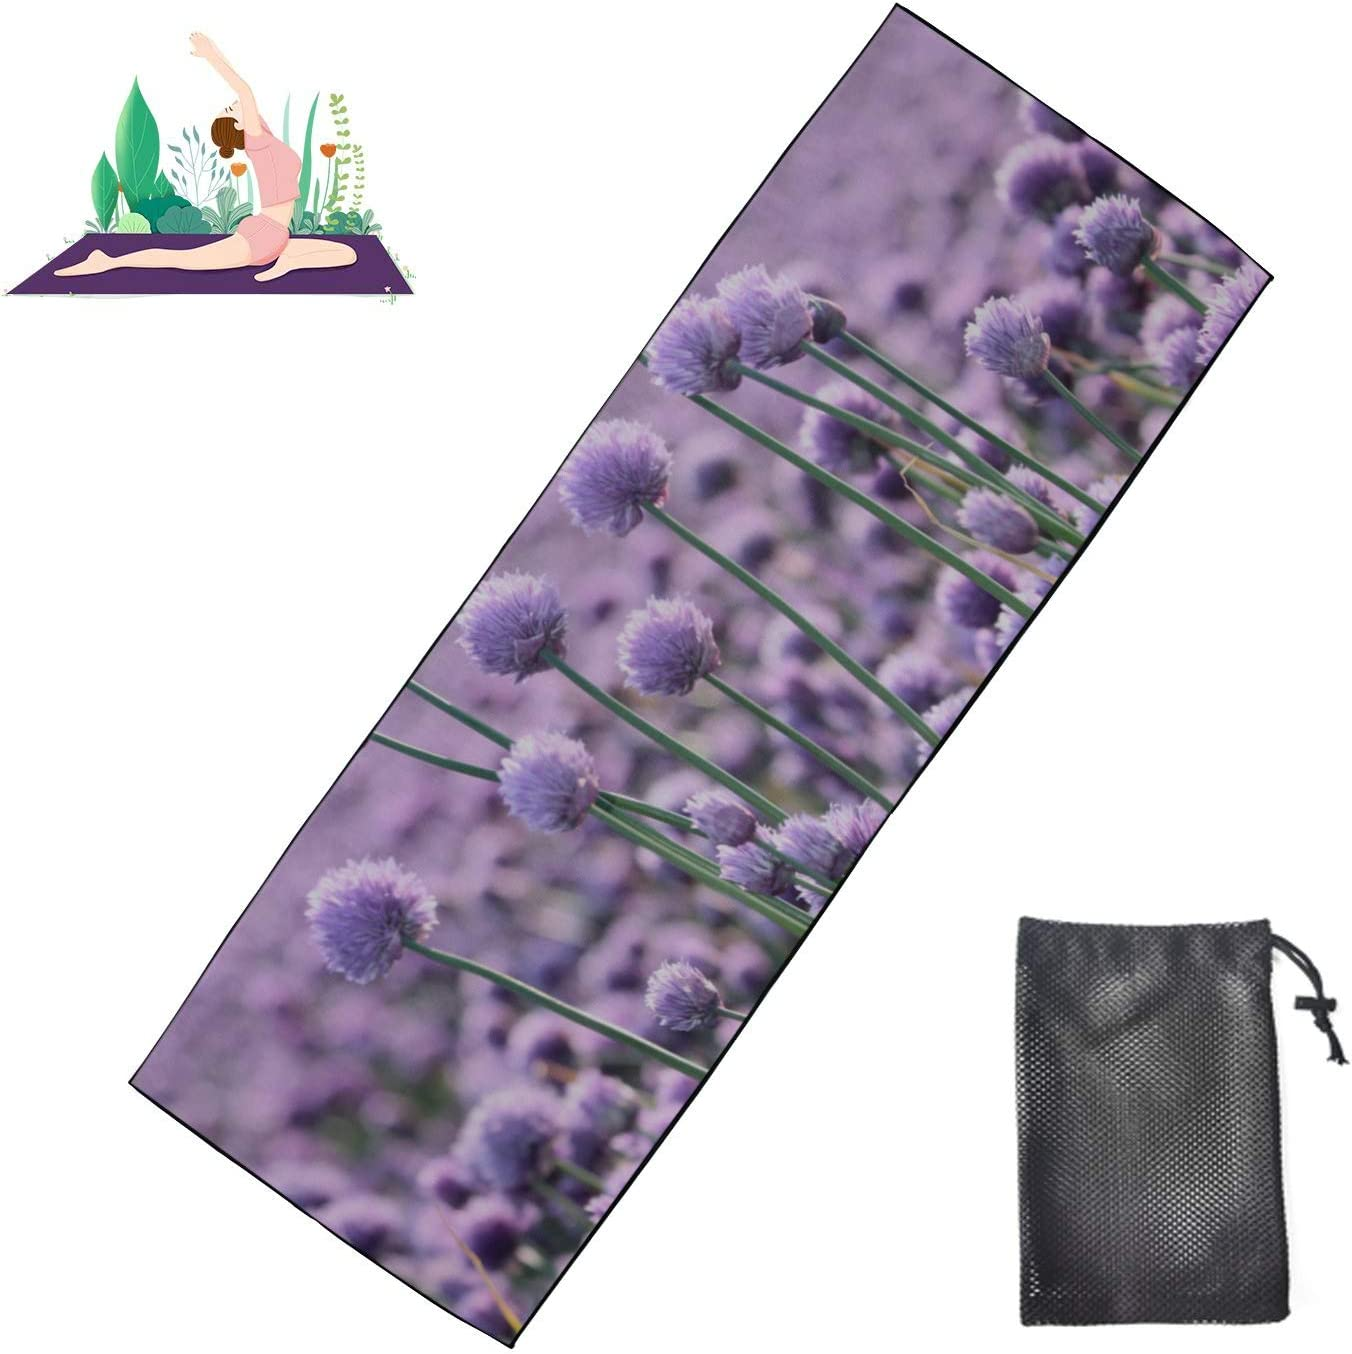 Huqalh Hot Yoga Towels Giant Onion Blooming Flower Floor Ma Cheap mail order Max 84% OFF sales